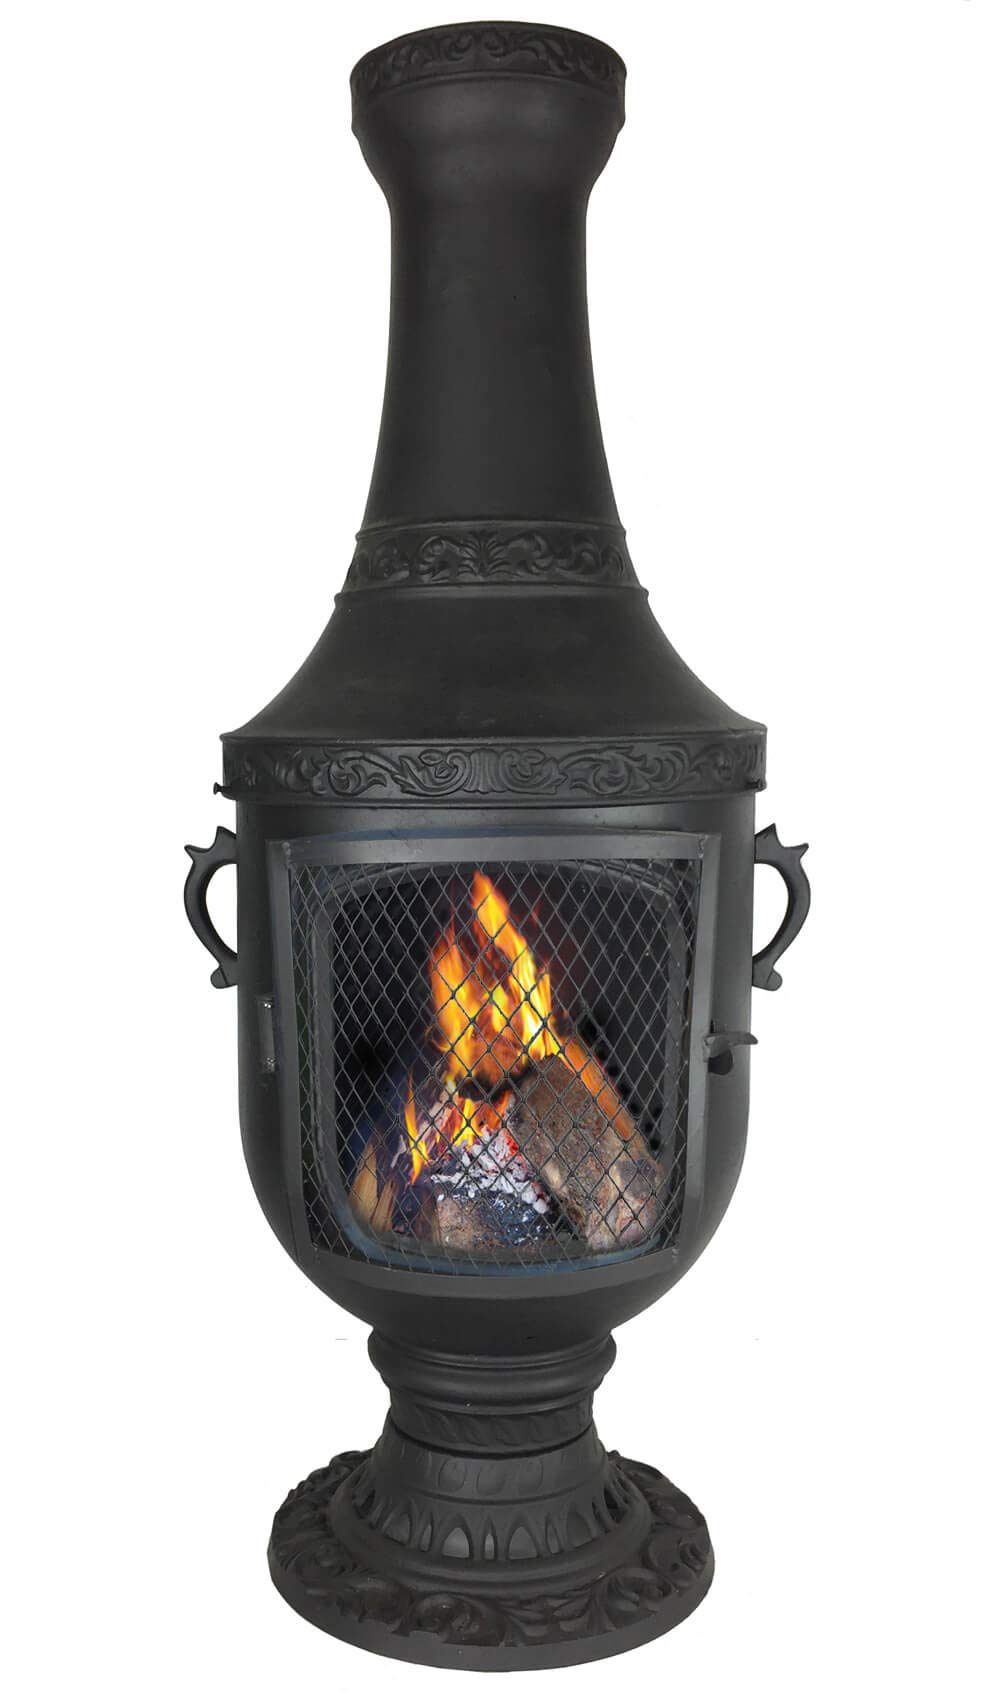 The Venetian Grill & Oven Chiminea in Charcoal CAST Aluminum by The Blue Rooster